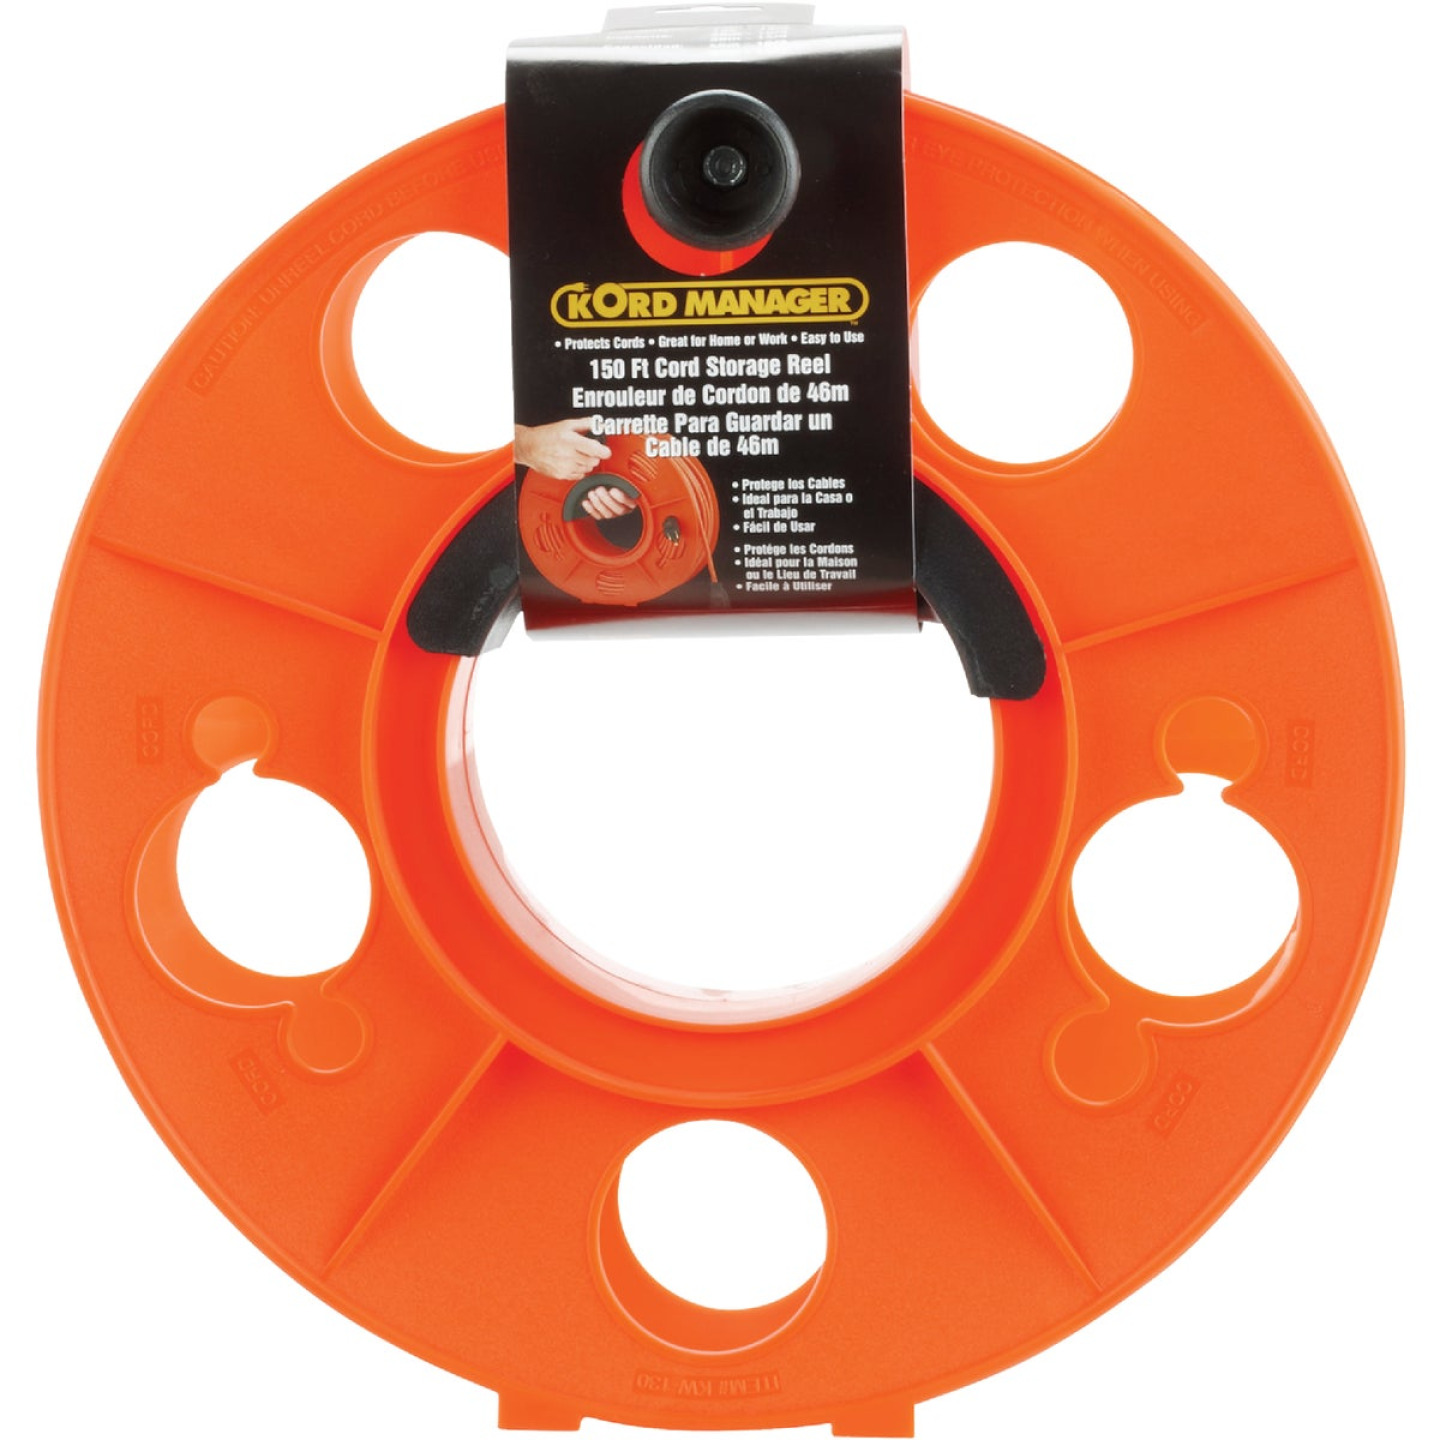 Bayco 150 Ft. of 16/3 Cord Capacity Plastic Cord Reel Image 2